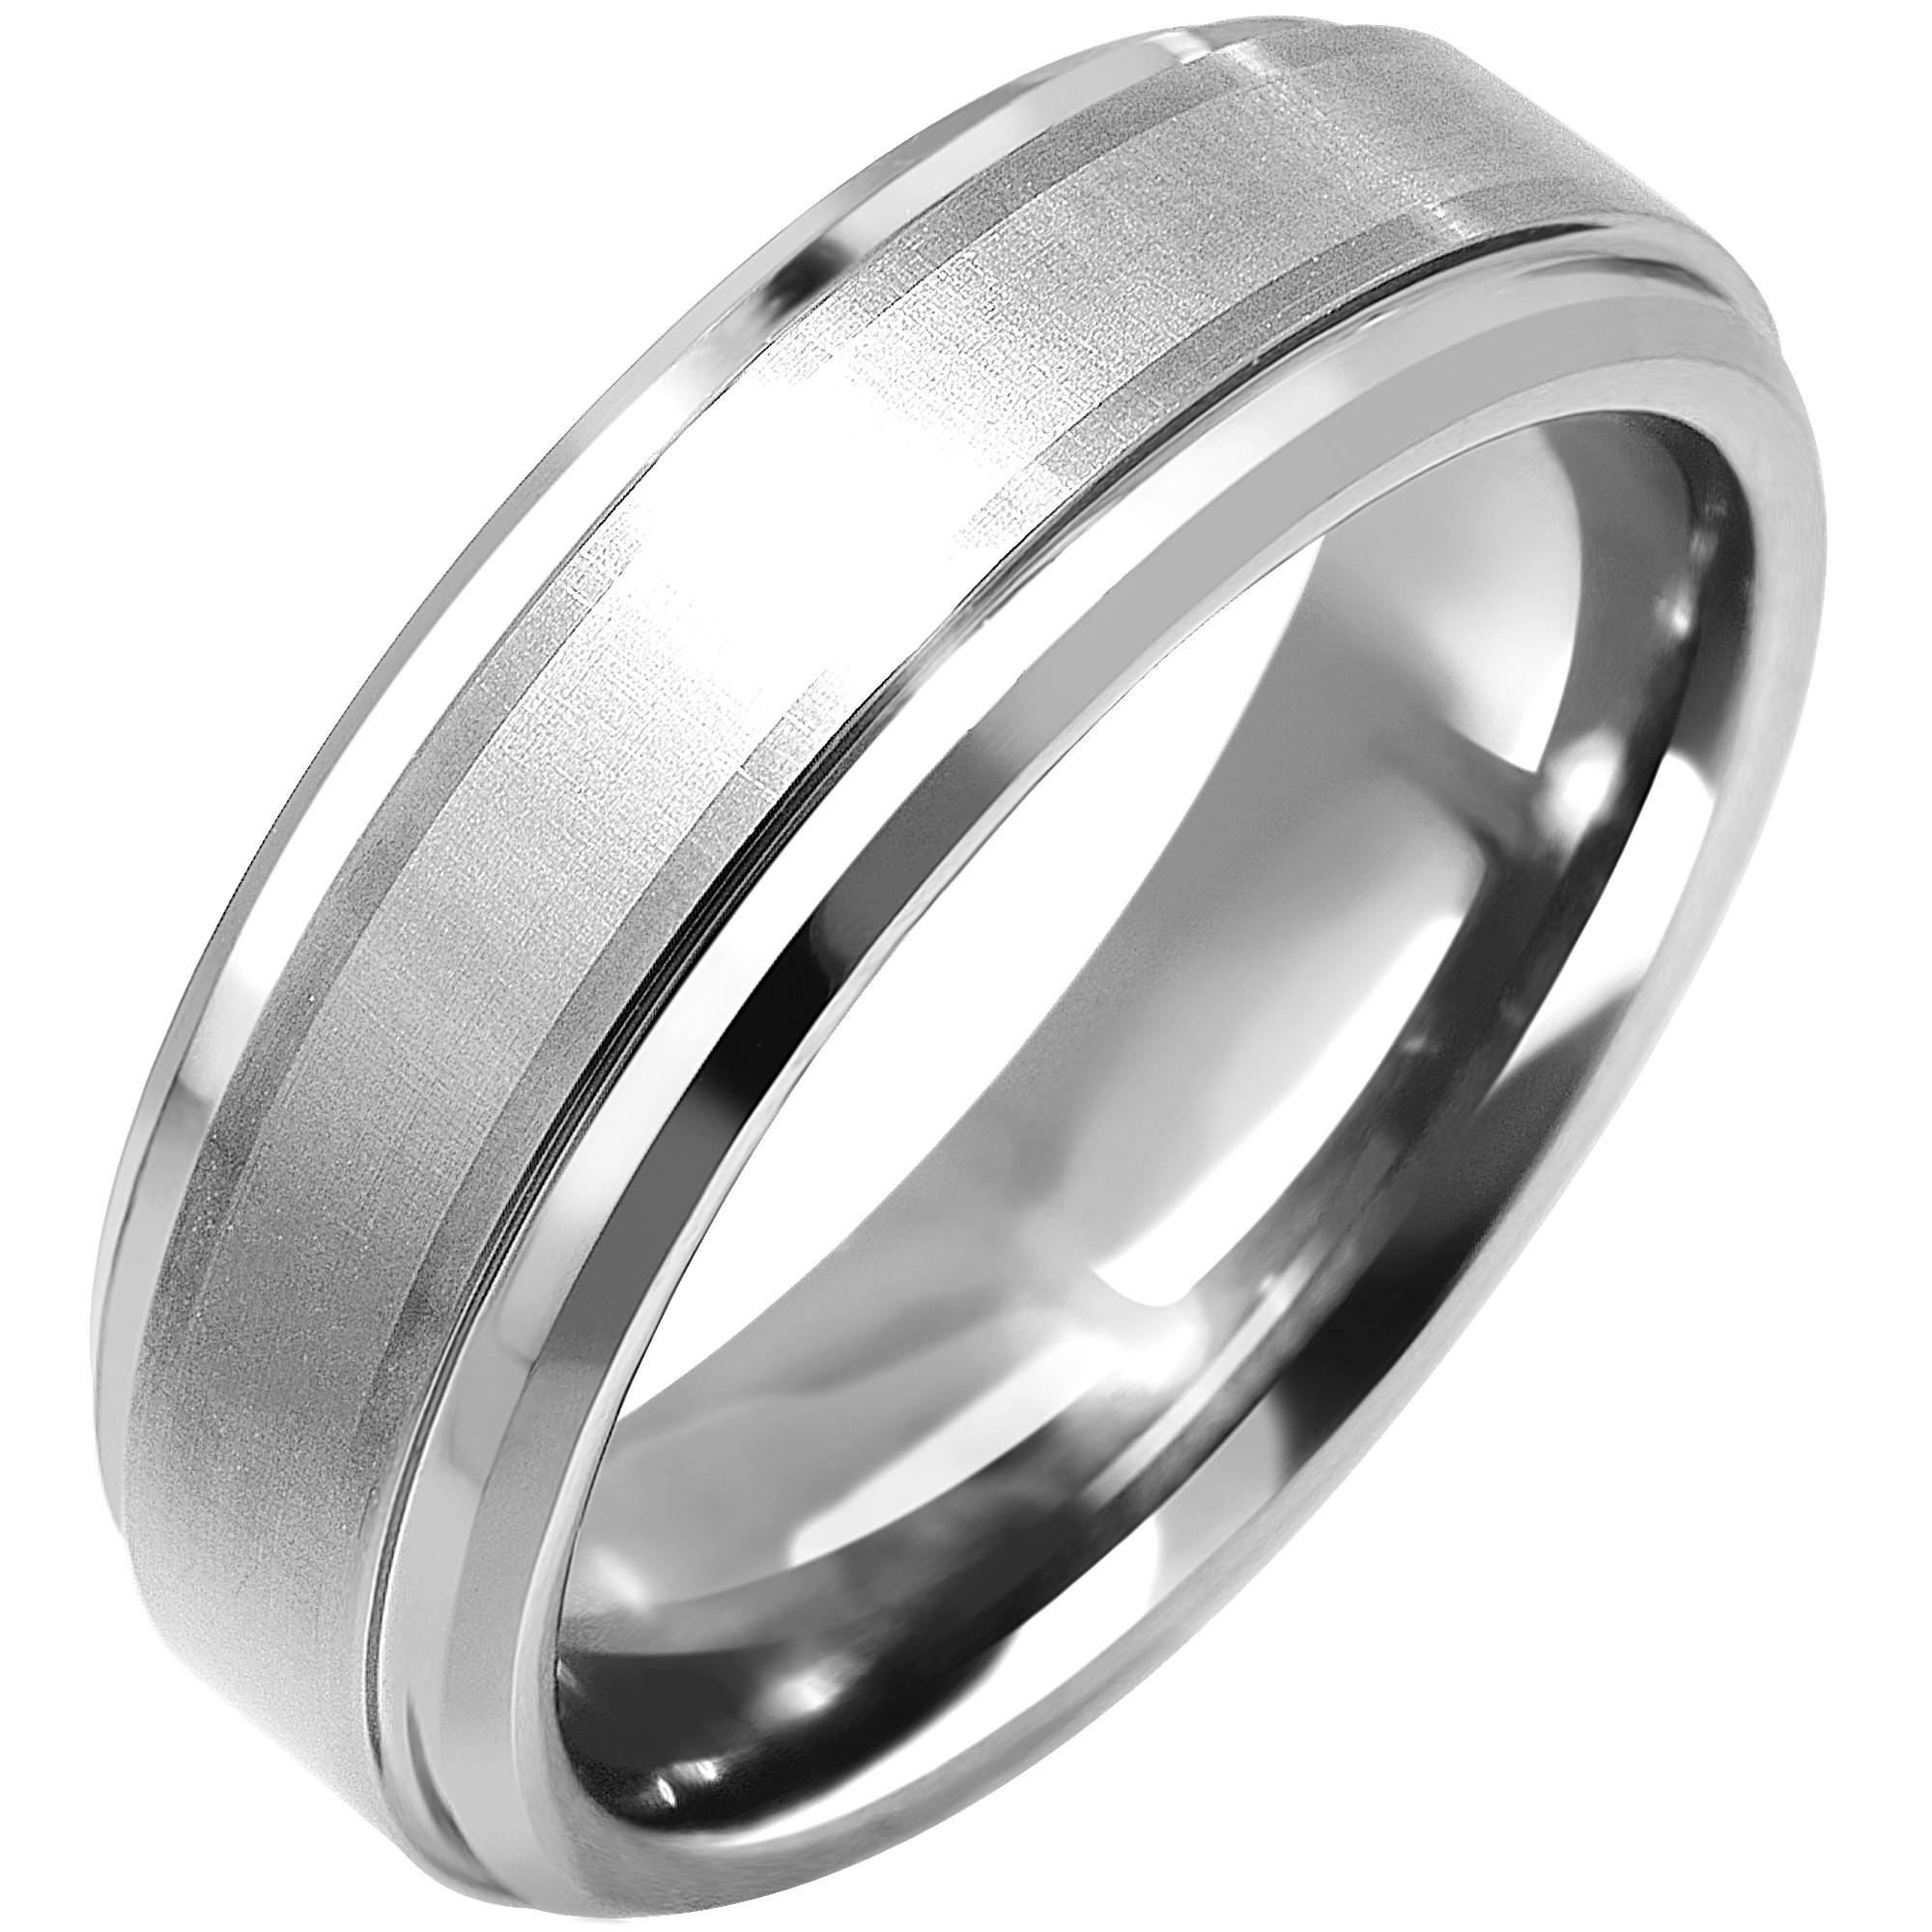 Artcarved Sienna Mens Wedding Band In Tungsten And 18Kt White Gold Intended For 7Mm Tungsten Wedding Bands (View 5 of 15)